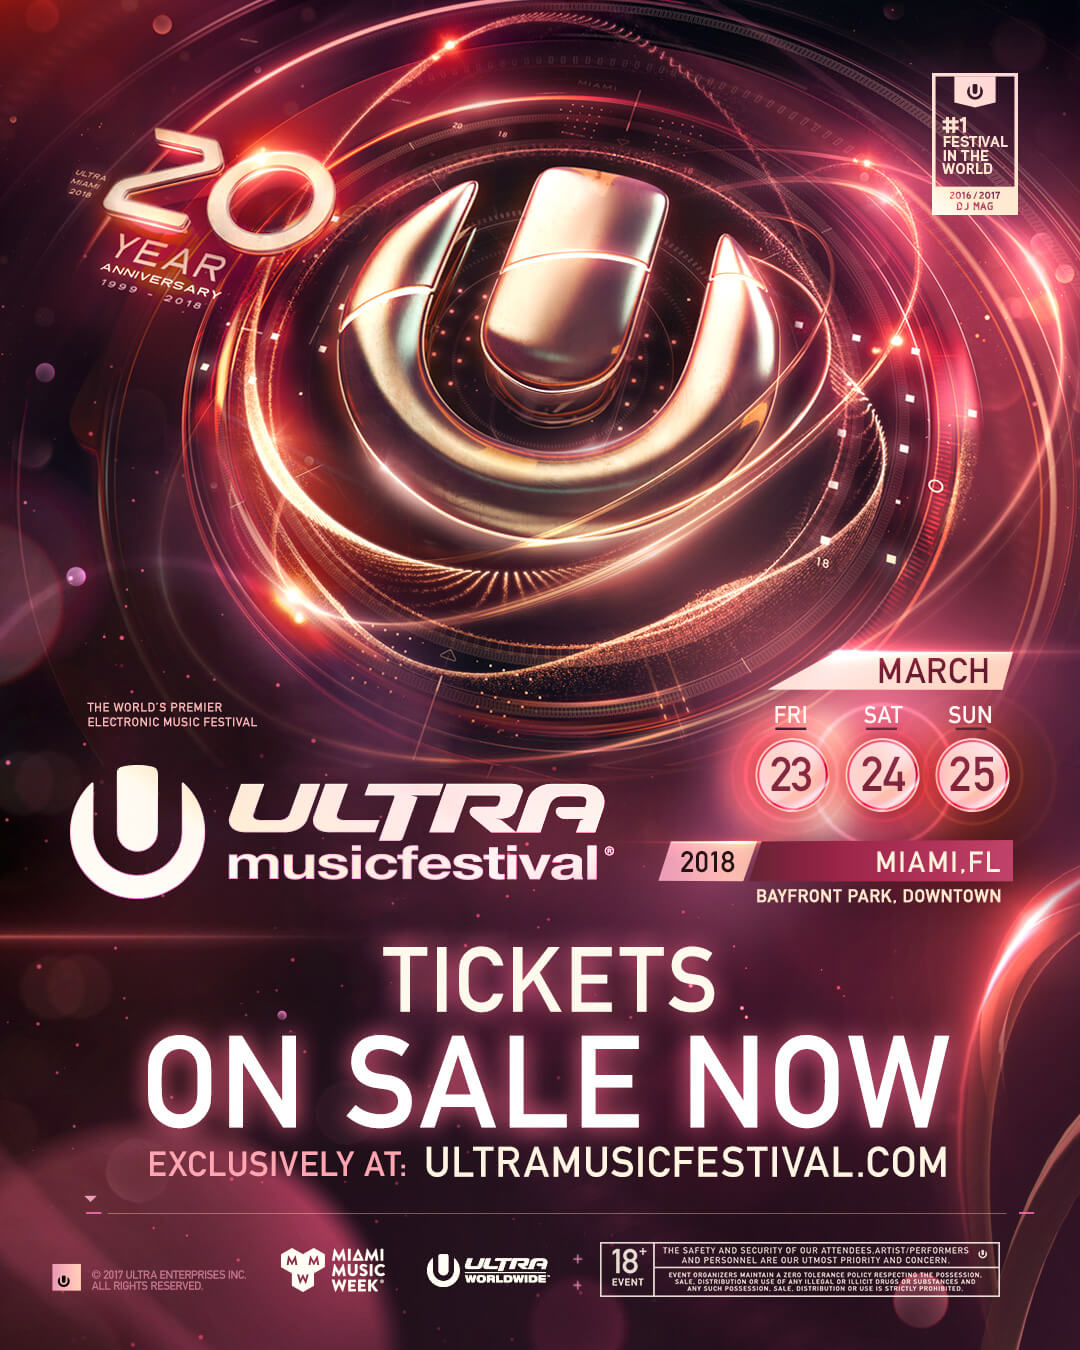 Tickets for ULTRA Music Festival's 20th Anniversary on Sale Now